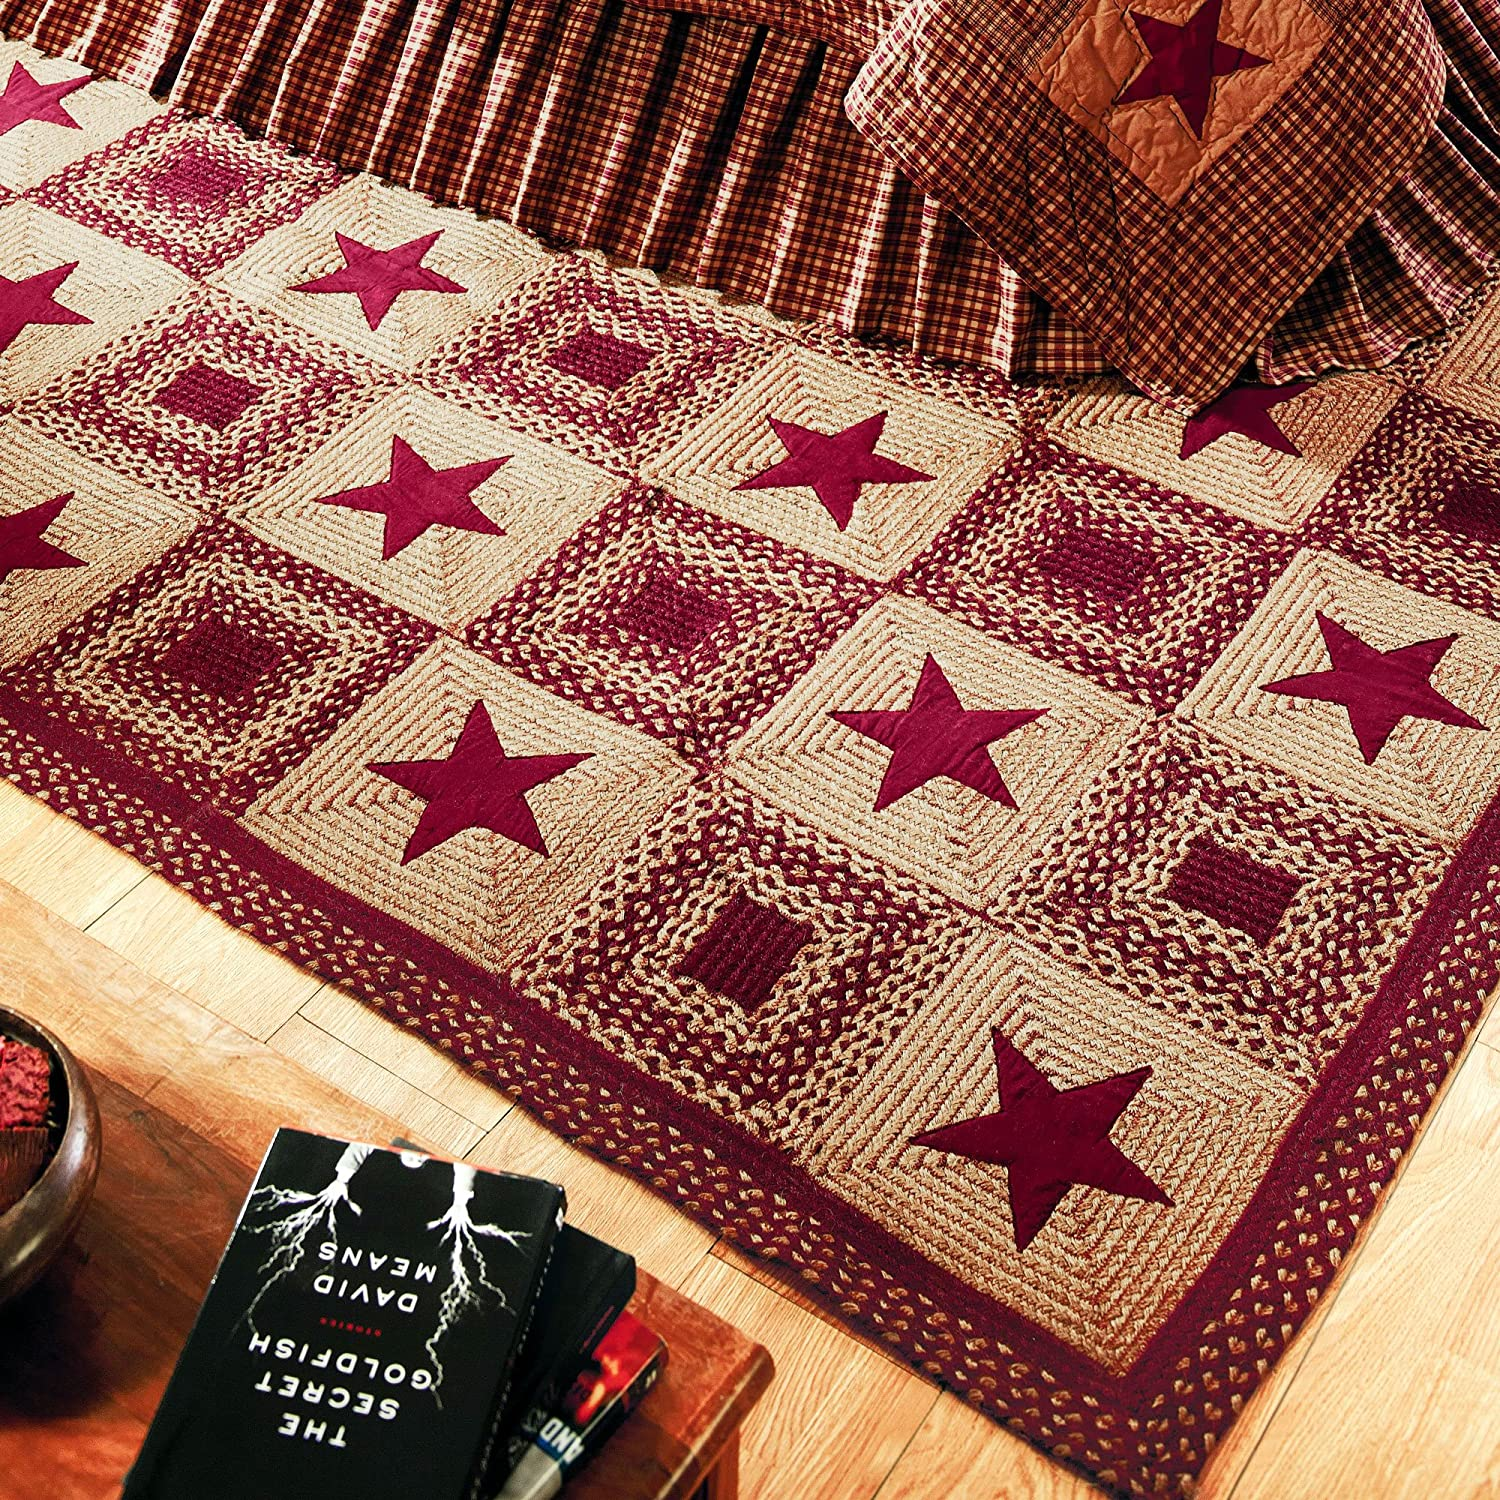 Ihf Braided Rugs Roselawnlutheran